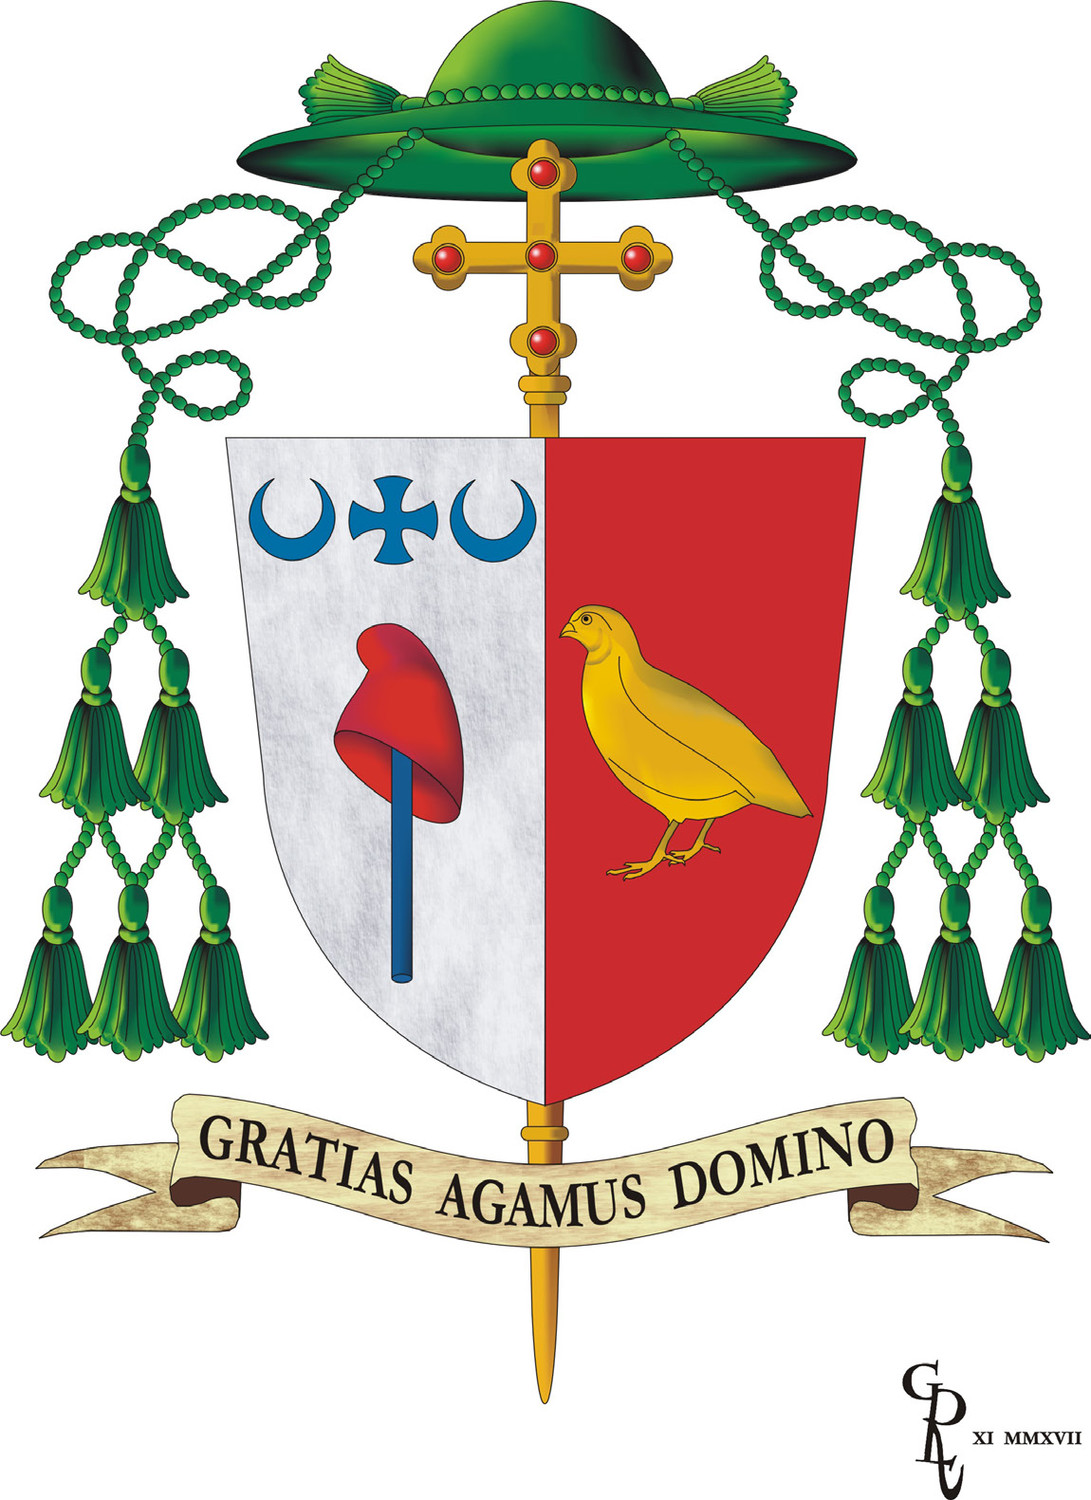 Bishop McKnight's motto and coat of arms | The Catholic